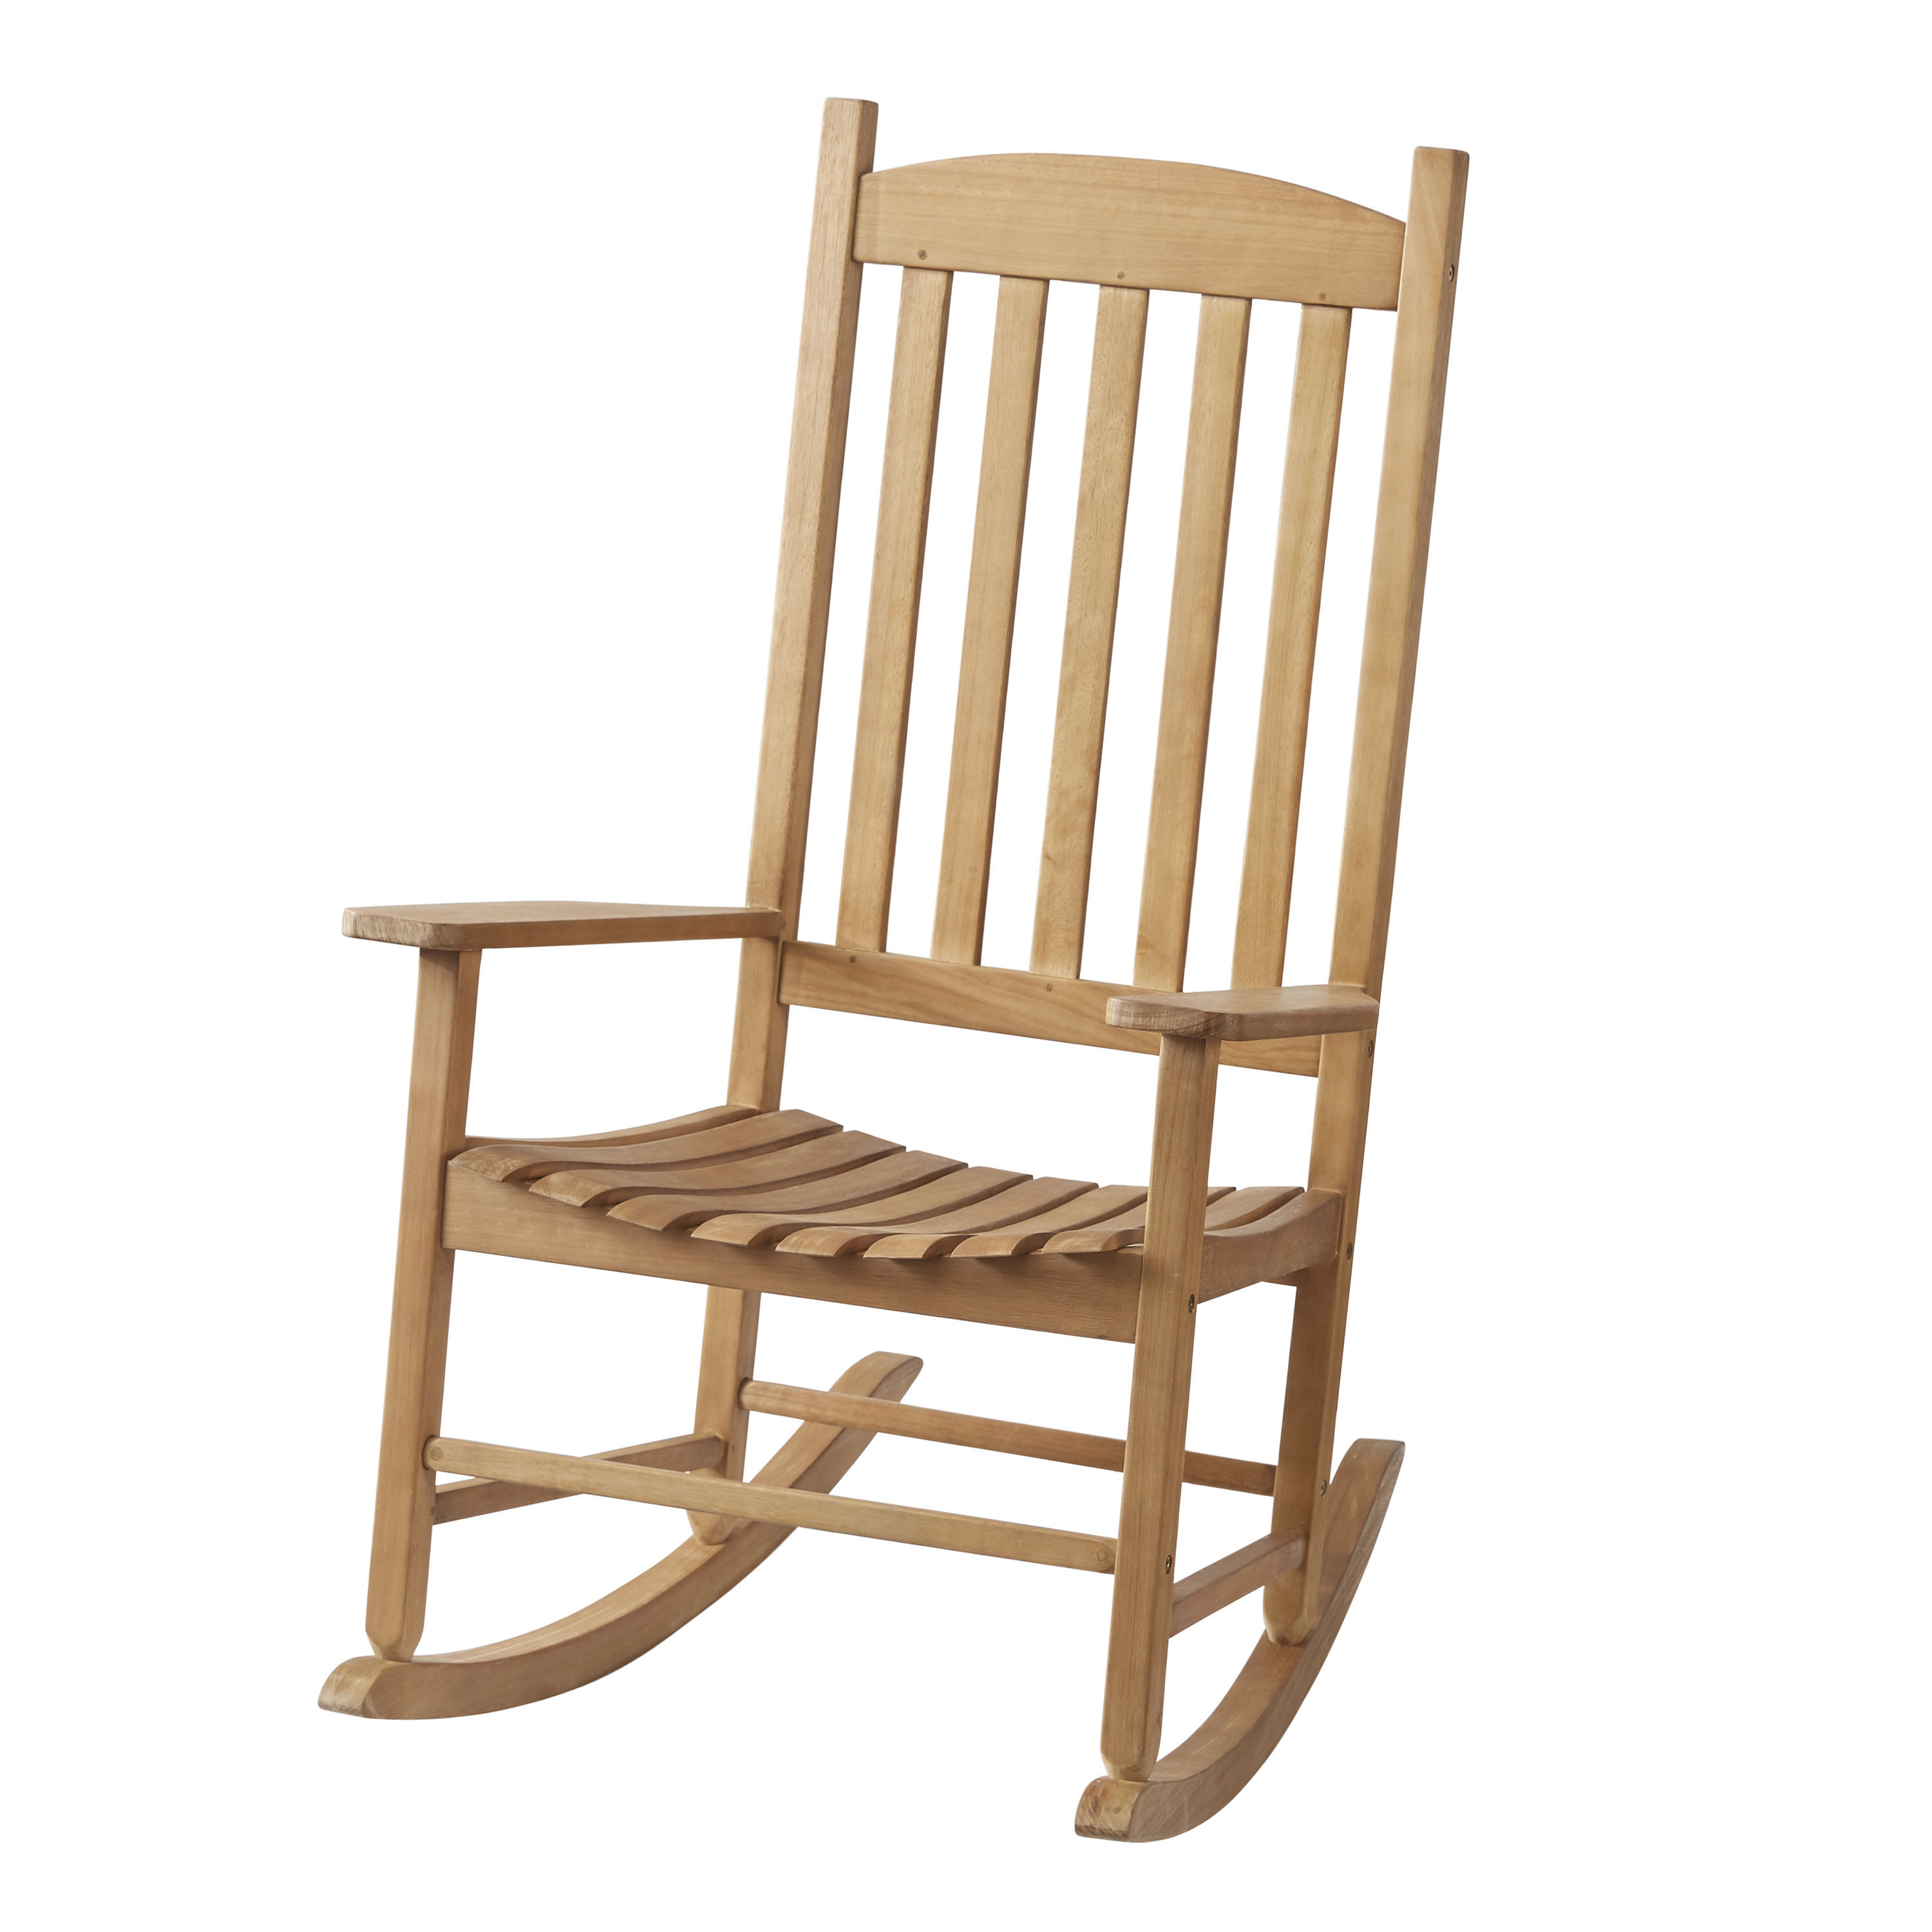 Mainstays Outdoor Wood Slat Rocking Chair Walmart Com